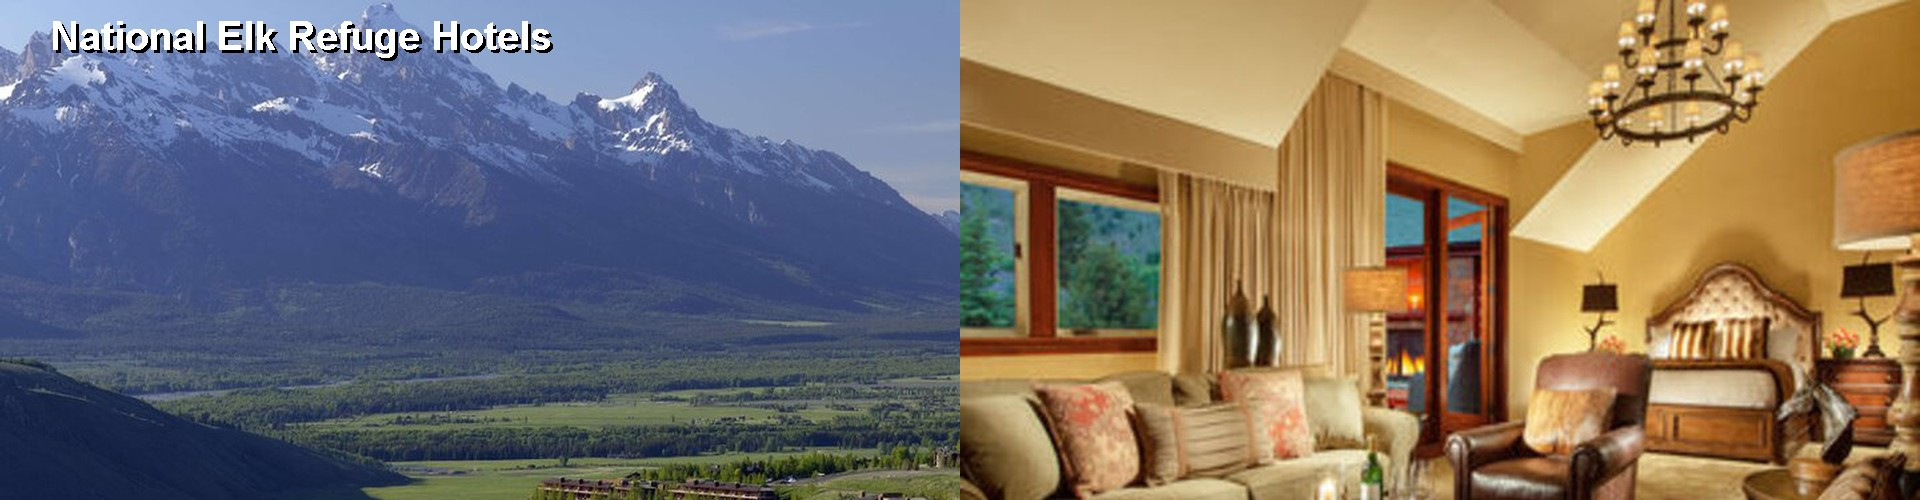 5 Best Hotels near National Elk Refuge